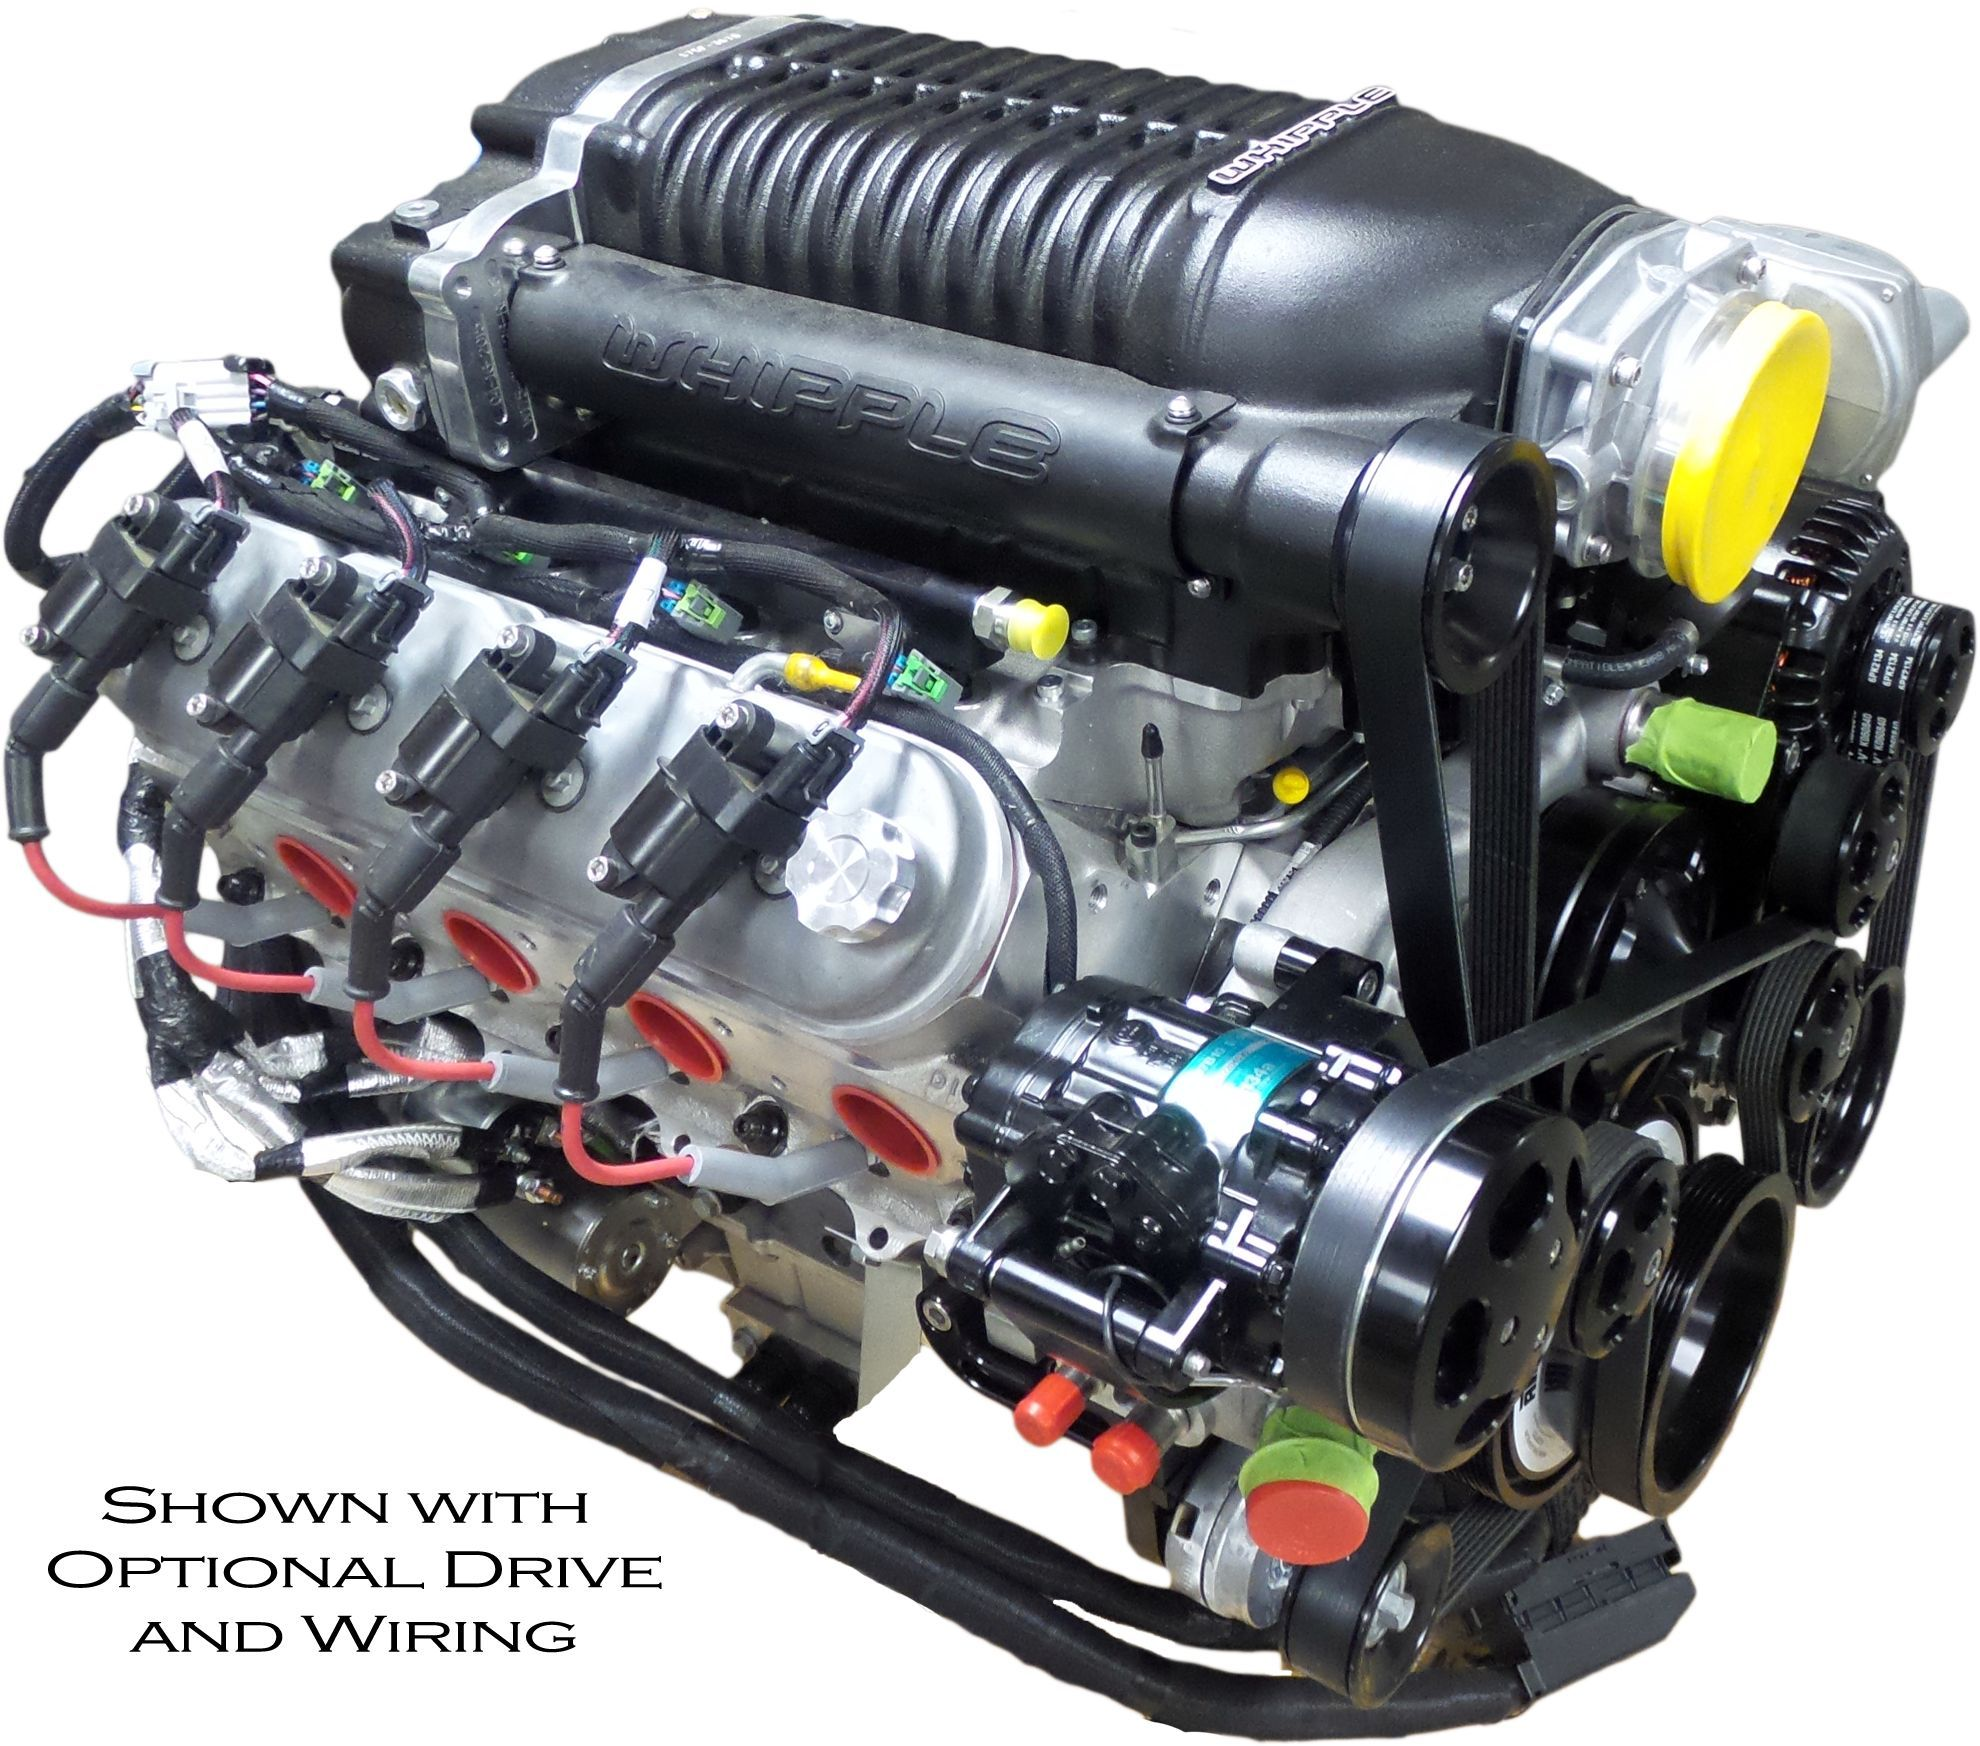 Whipple Supercharger Dodge Ram: Type: LS3 6.8L SC 2.9L Whipple Displacement: 416 Cubic